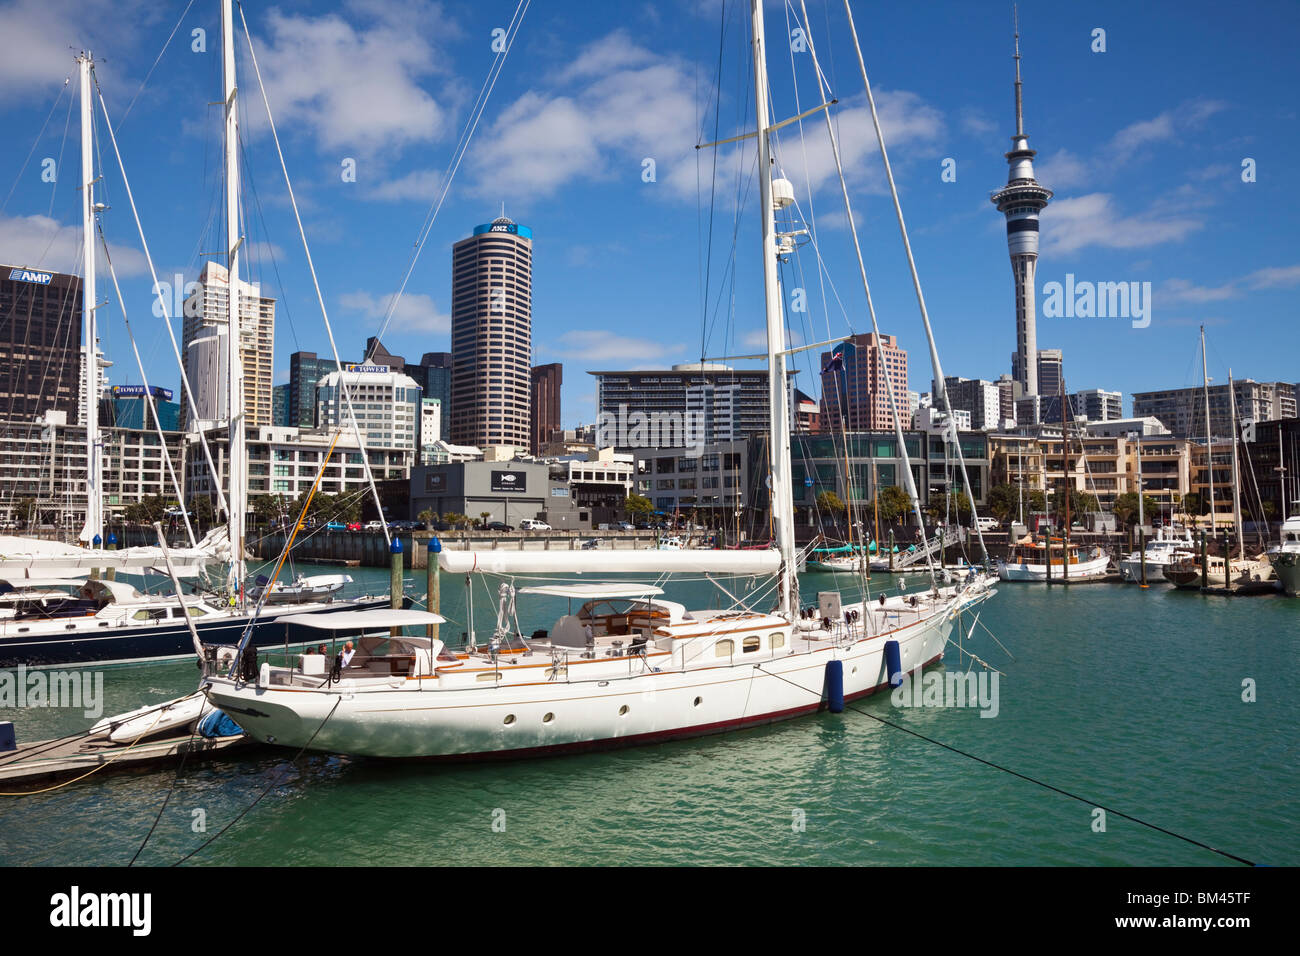 Yachts in Viaduct Basin with city skyline in background. Auckland, North Island, New Zealand - Stock Image